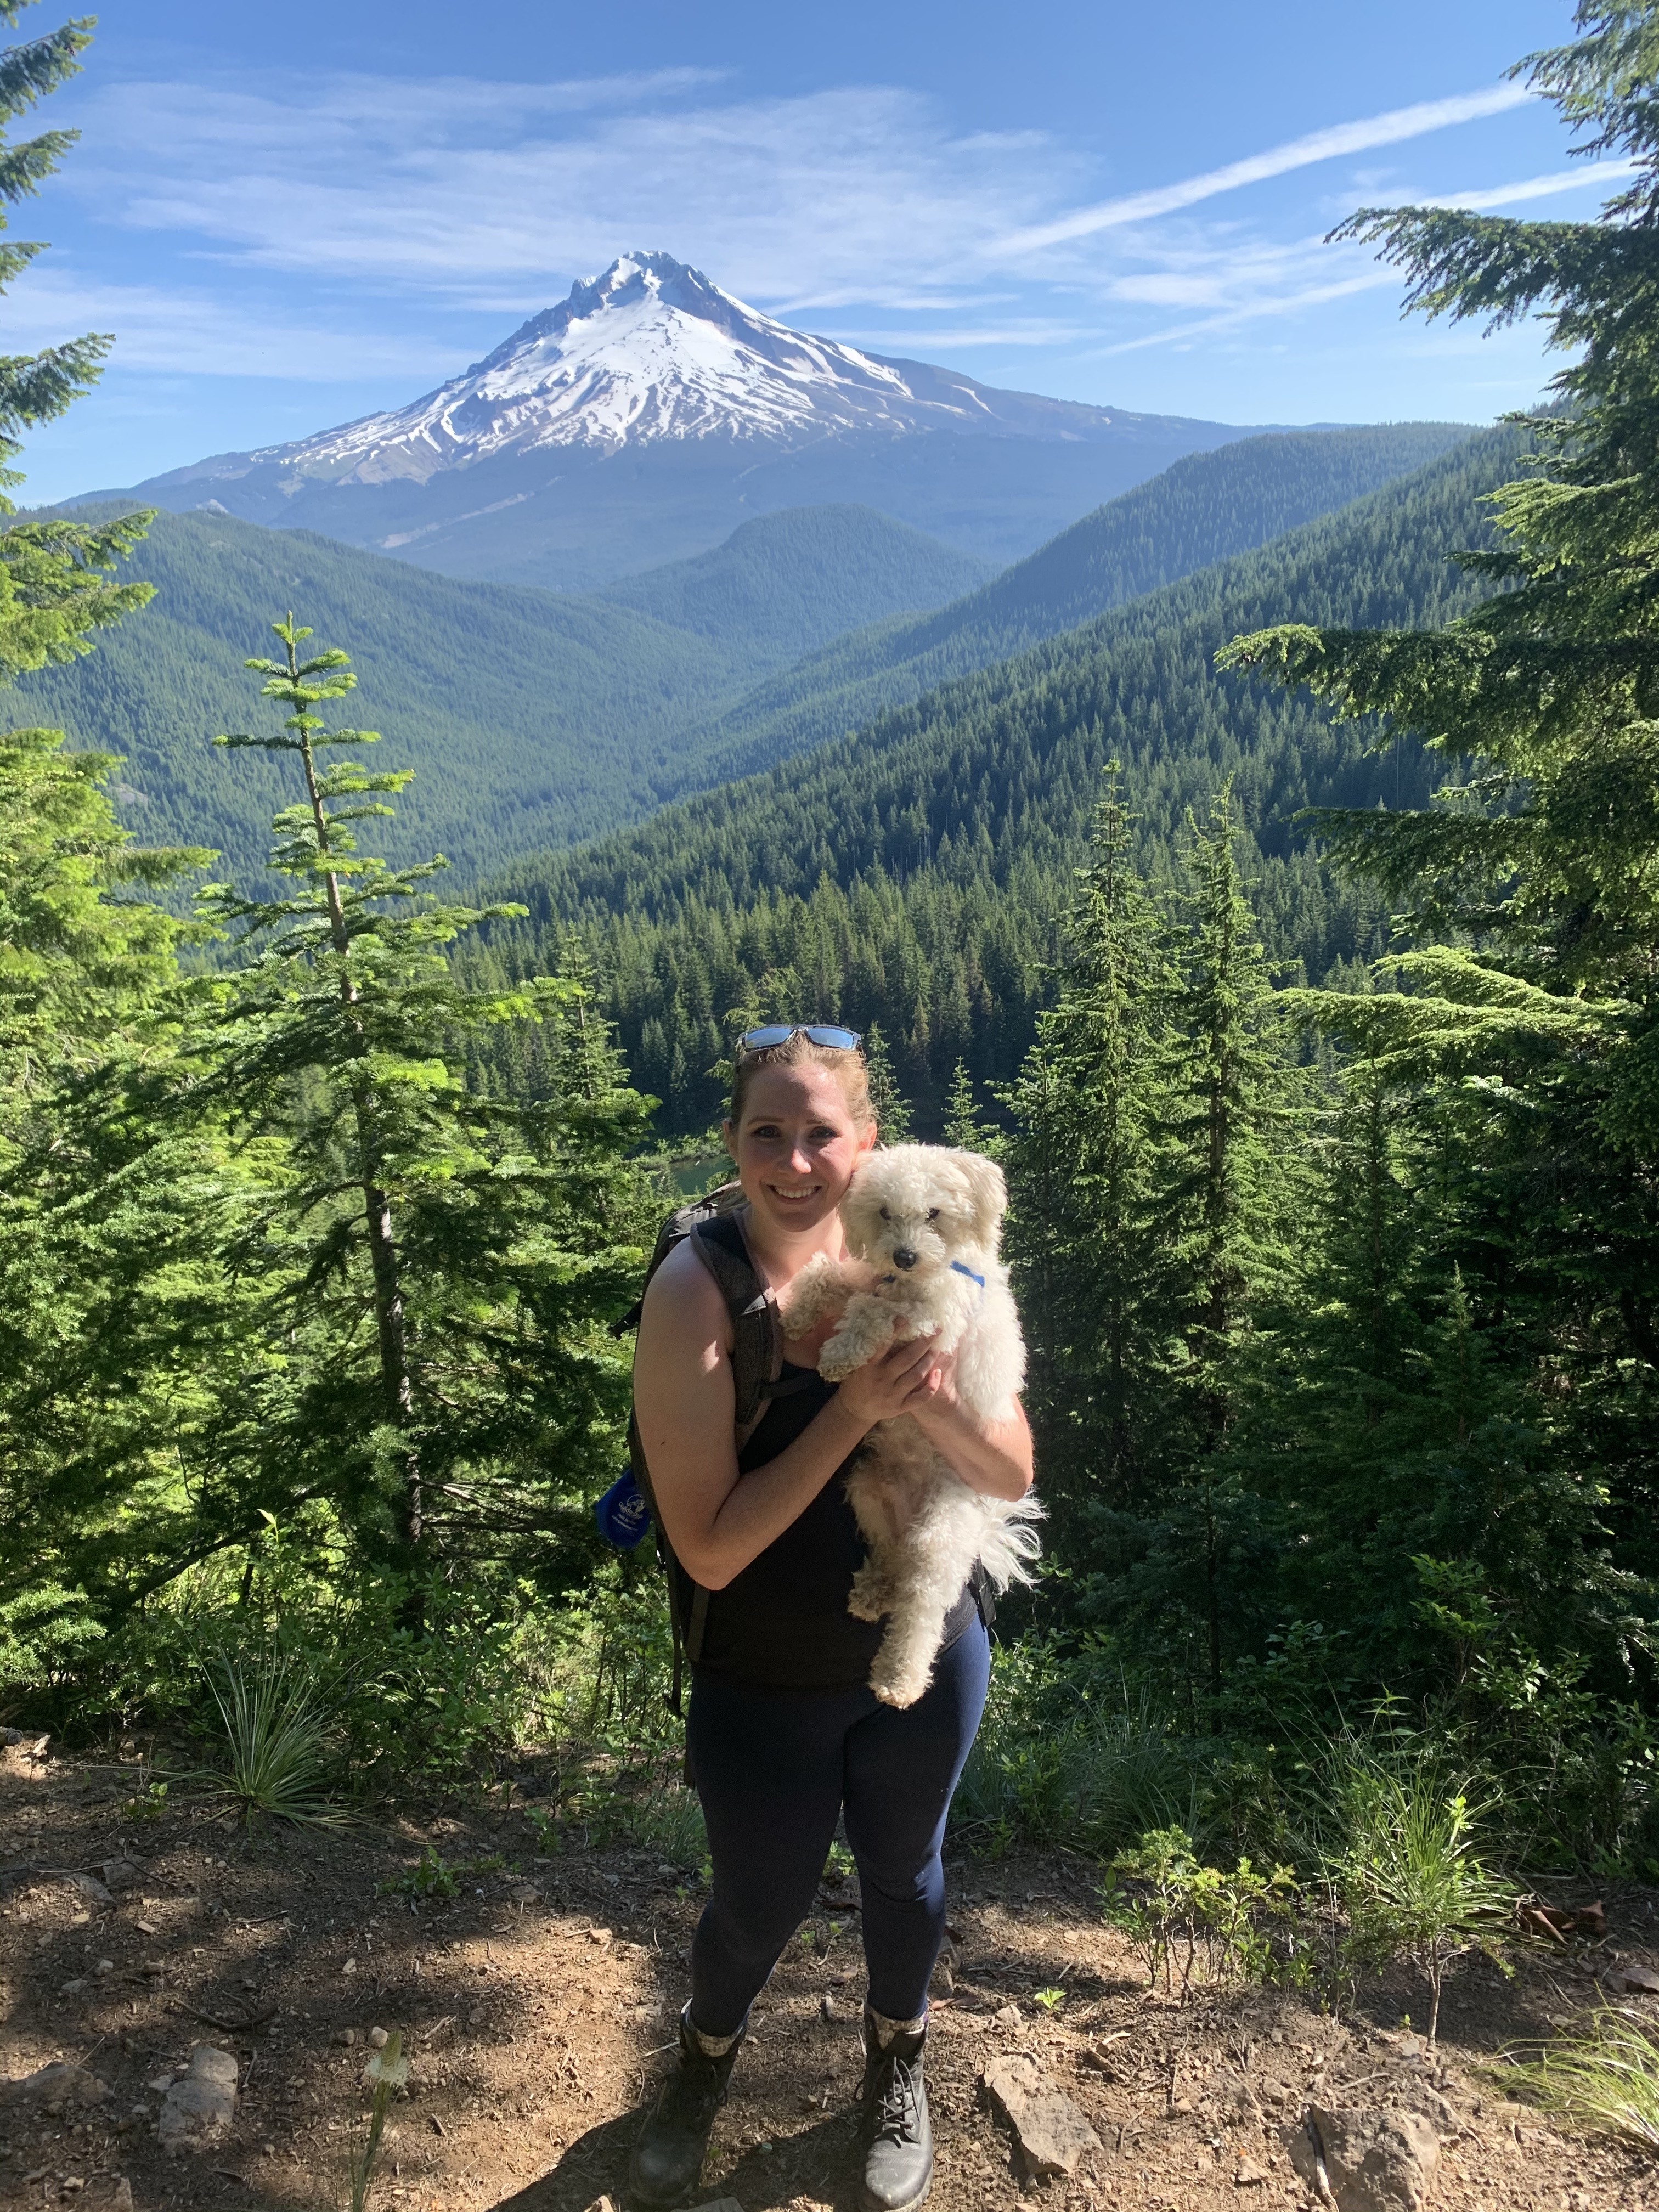 Kadi smiles for a photo op on a hiking trail with stunning mountain vistas. Kadi is holding a small white dog in her arms.